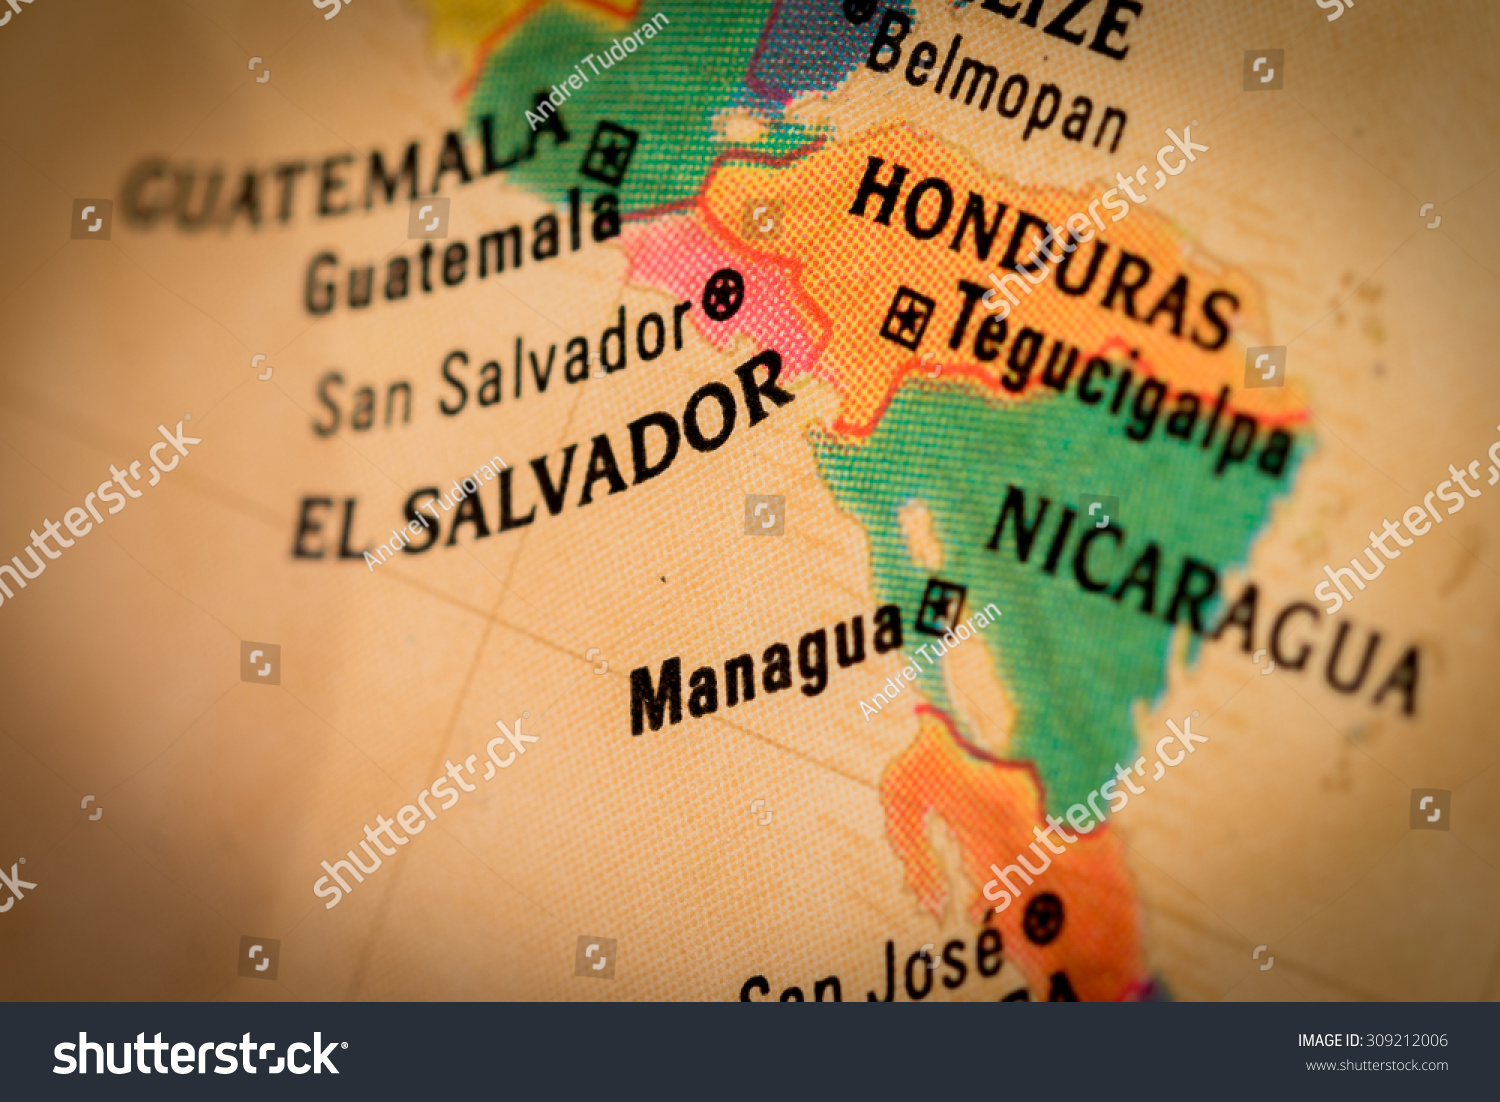 Map View Managua On Geographical Globe Stock Photo (Edit Now ... Managua On Map on tegucigalpa on map, montevideo on map, mbabane on map, makassar on map, taegu on map, cayman islands on map, panama on map, valledupar on map, havana on map, kampala on map, kingston on map, cancun on map, toronto on map, san juan on map, libreville on map, rio de janeiro on map, santiago on map, santo domingo on map, bogota on map, nassau on map,